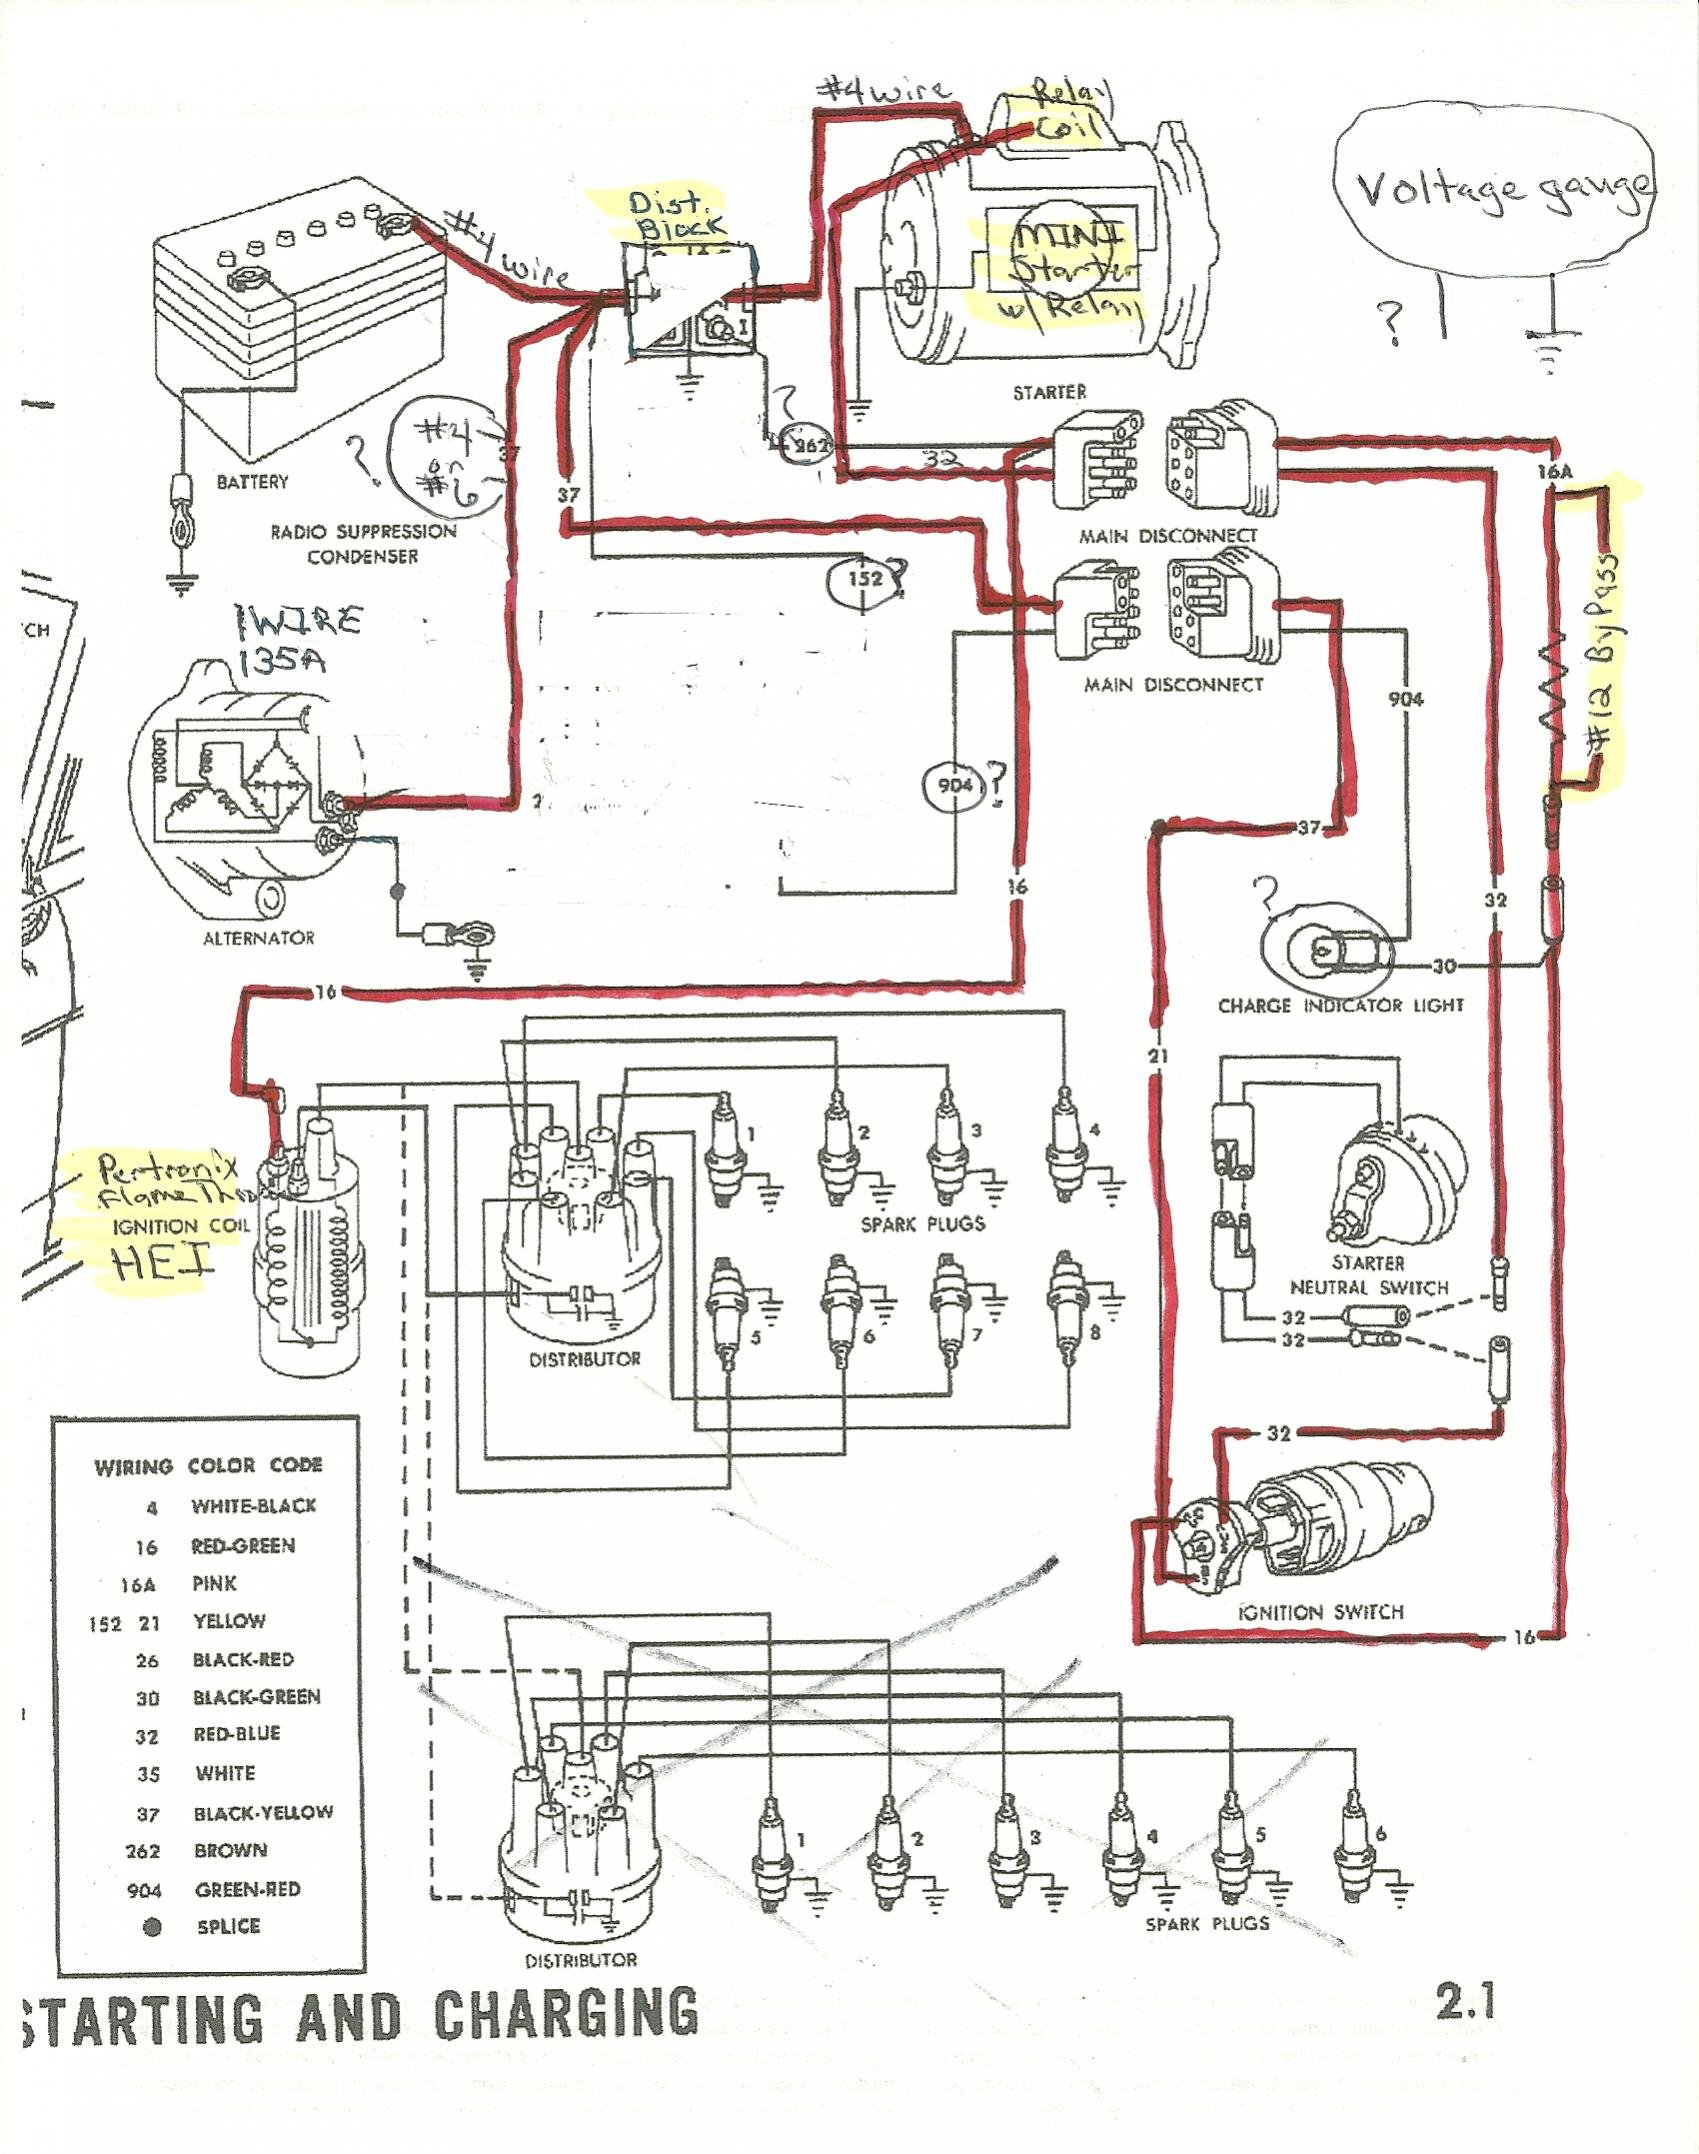 163469d1347246202 1965 alternator starter distributor wiring scan0001 1970 ford mustang mercury cougar original wiring diagram Ford Alternator Wiring Diagram at webbmarketing.co